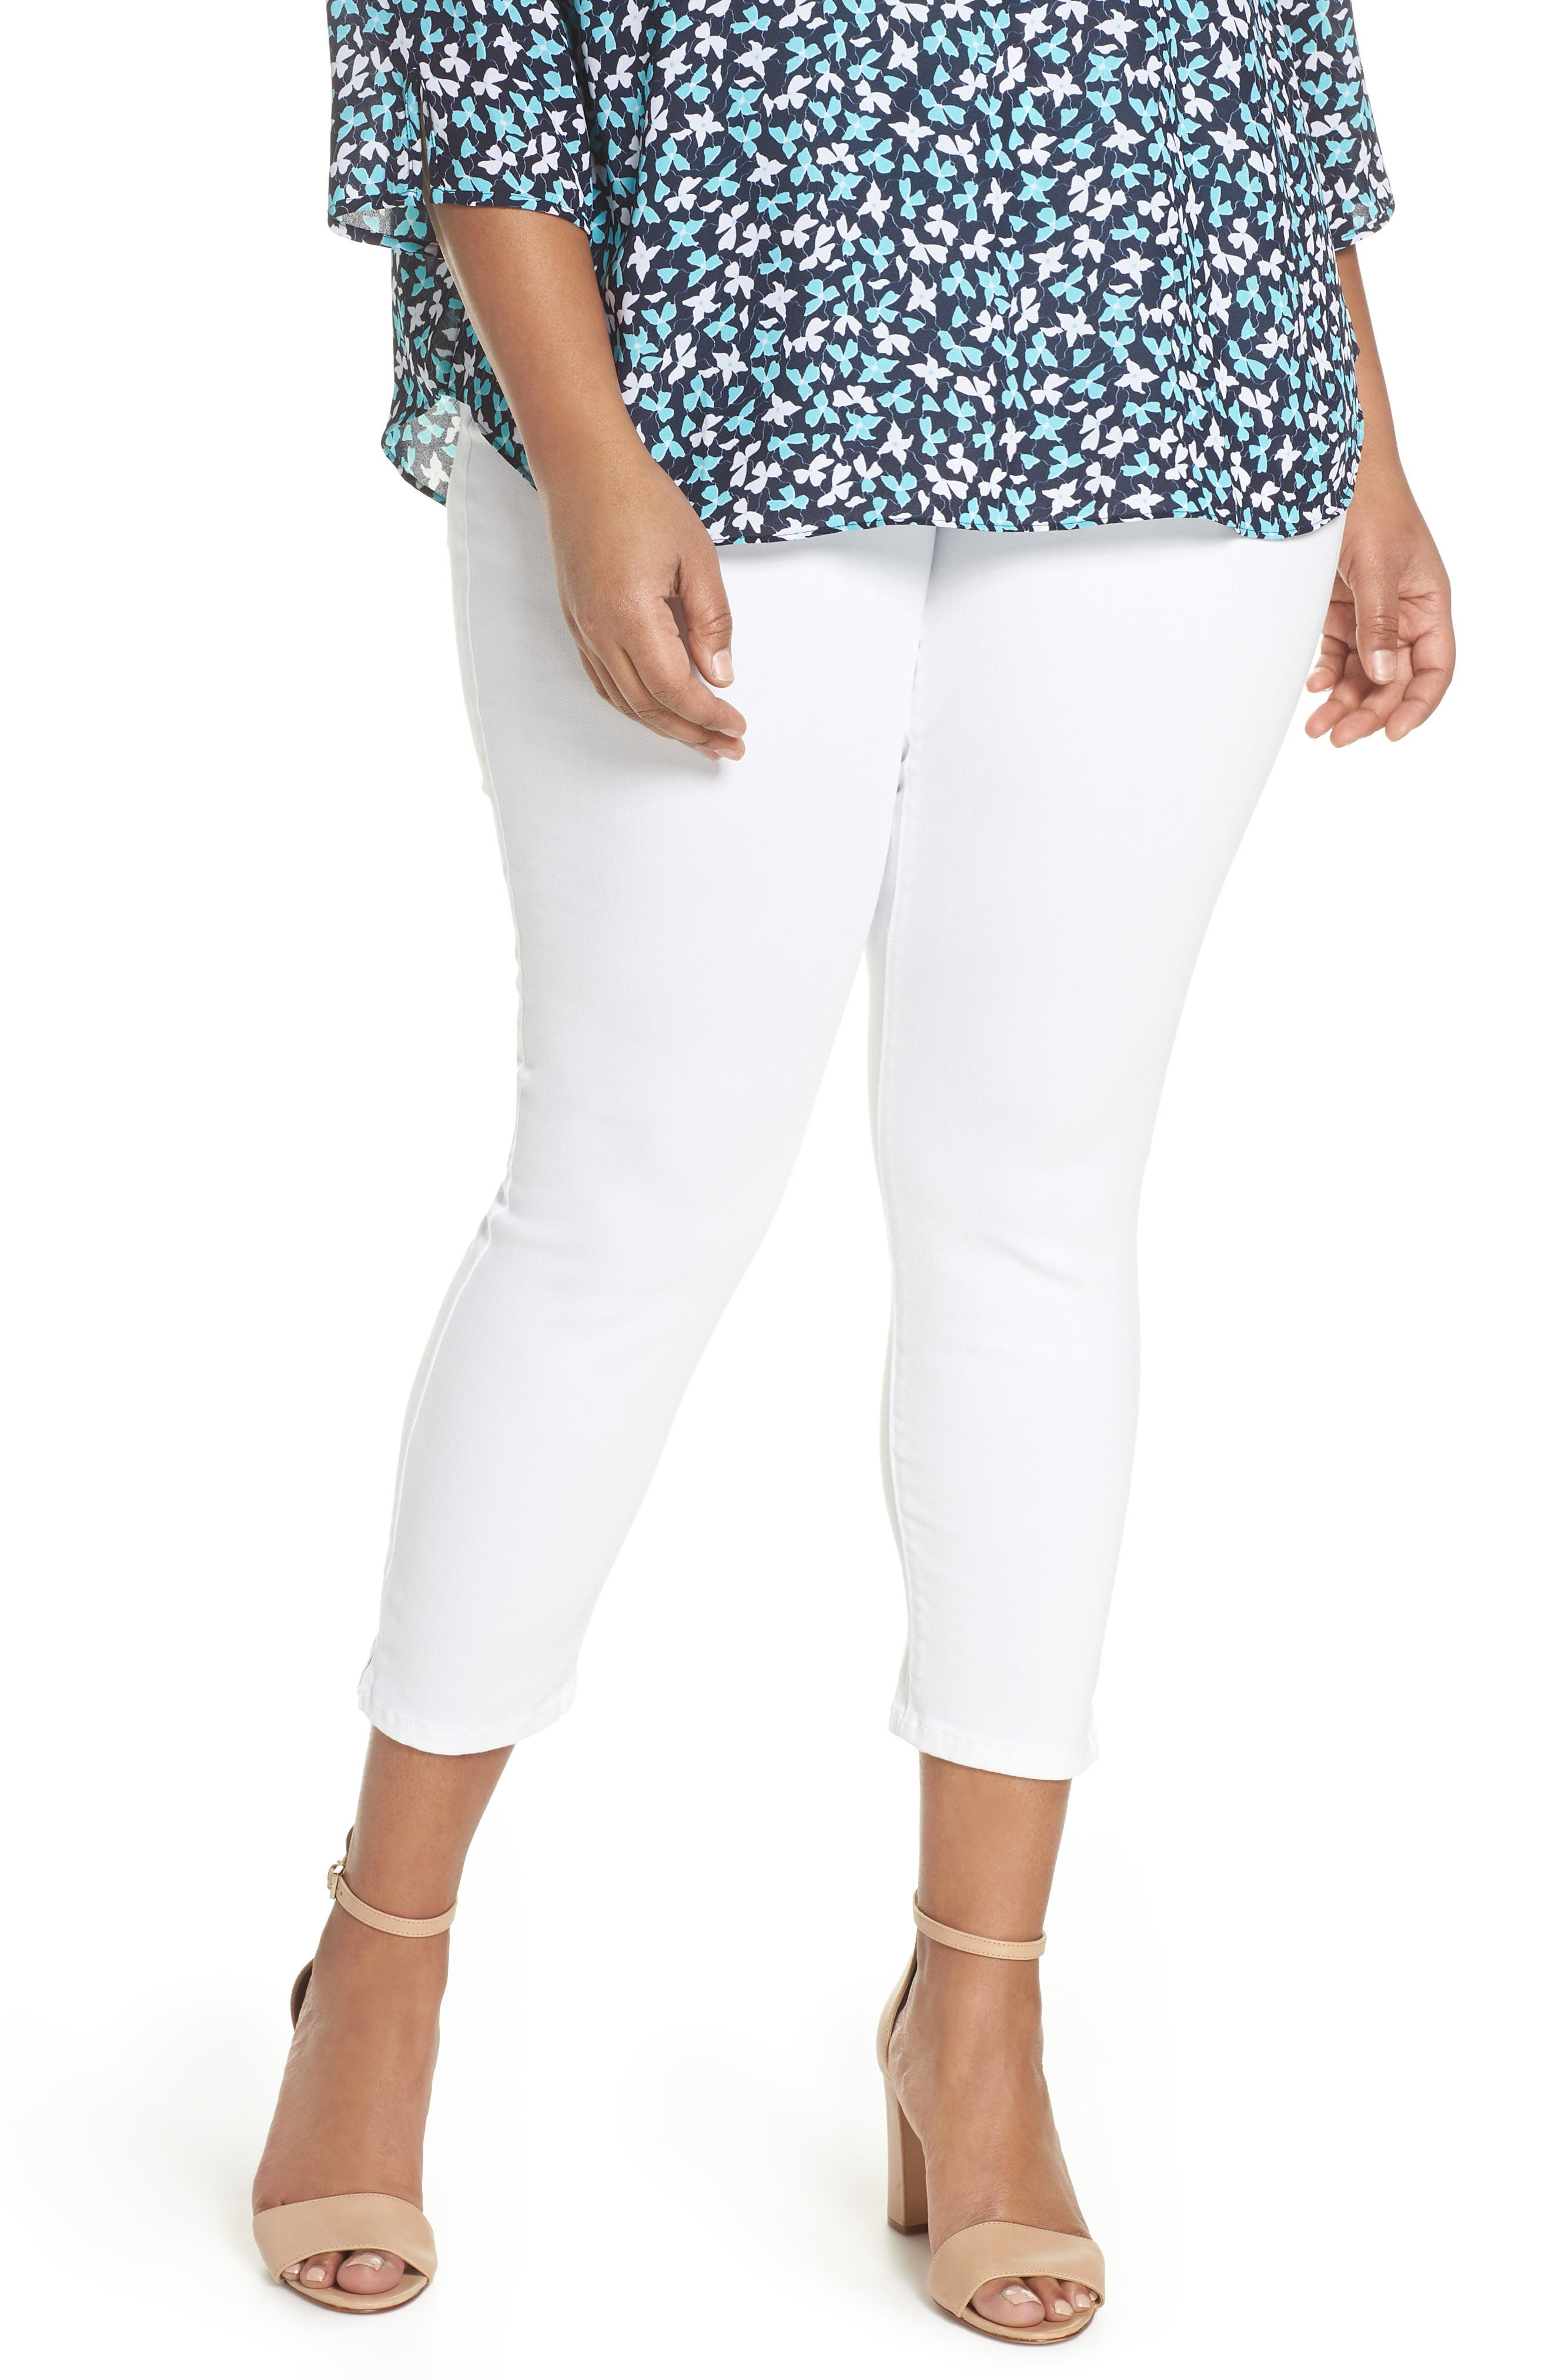 Alternate Image 1 Selected - NYDJ Alina Pull-On Ankle Skinny Jeans (Endless White) (Plus Size)